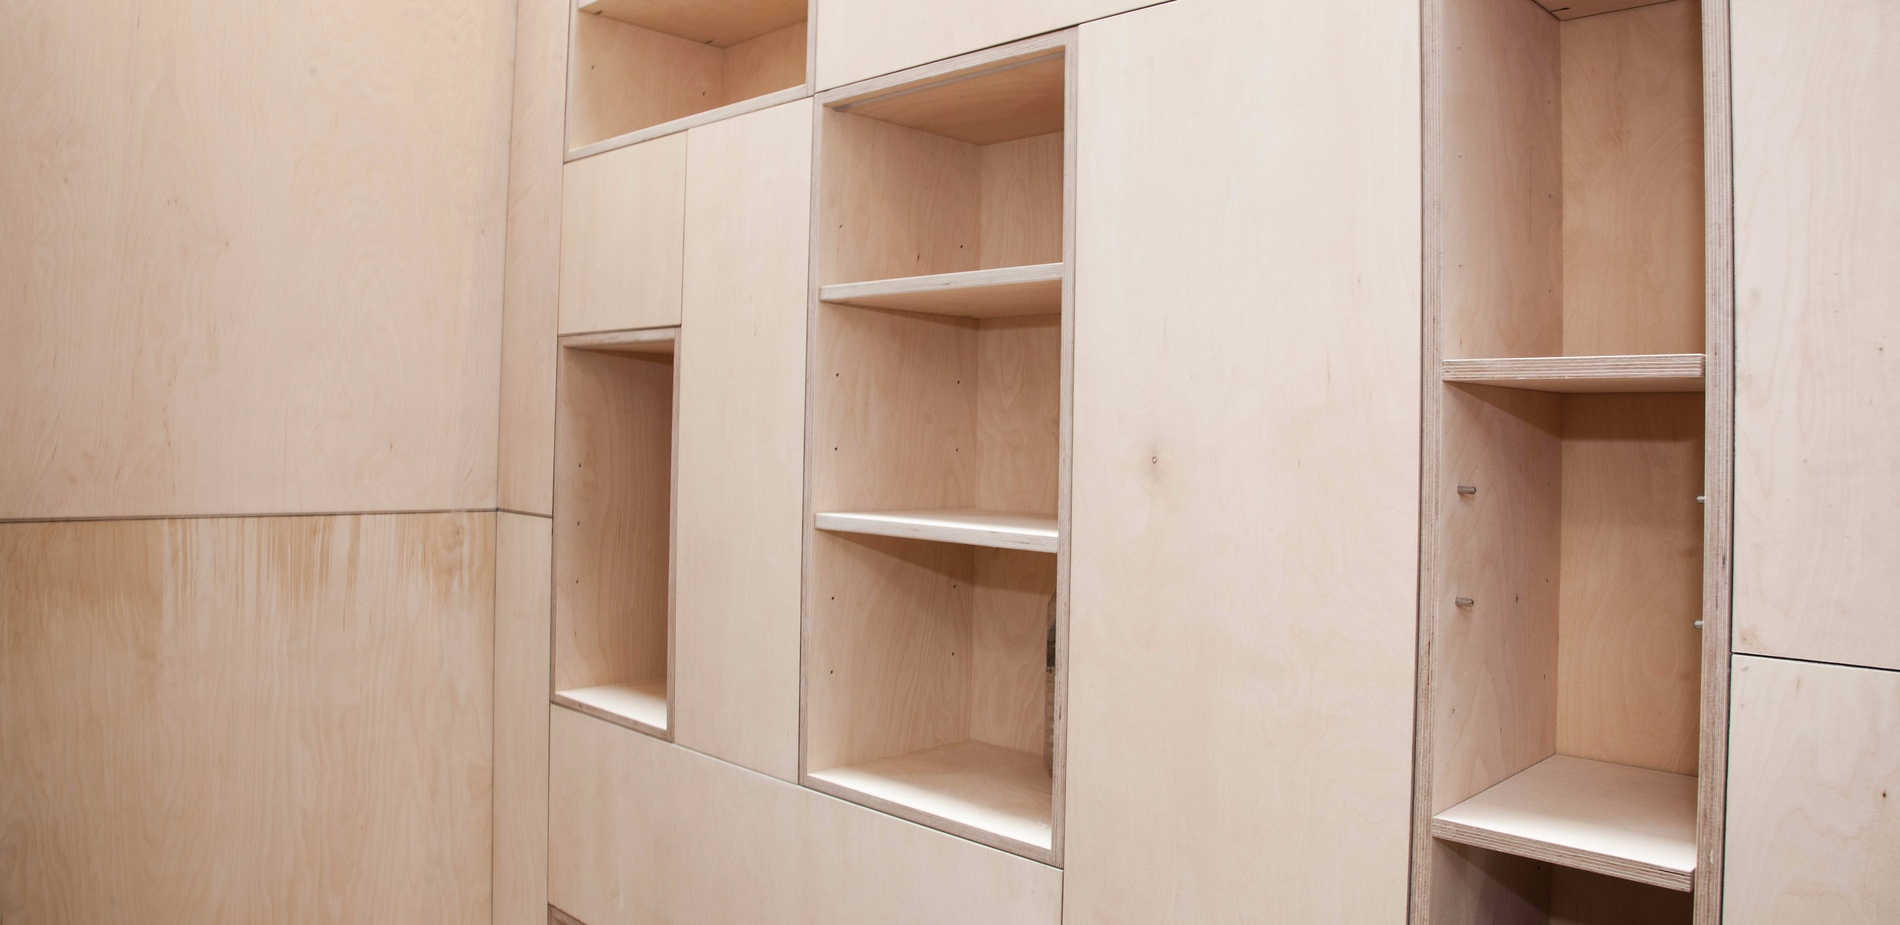 Birch ply interior - Victorian renovation - K&D joinery